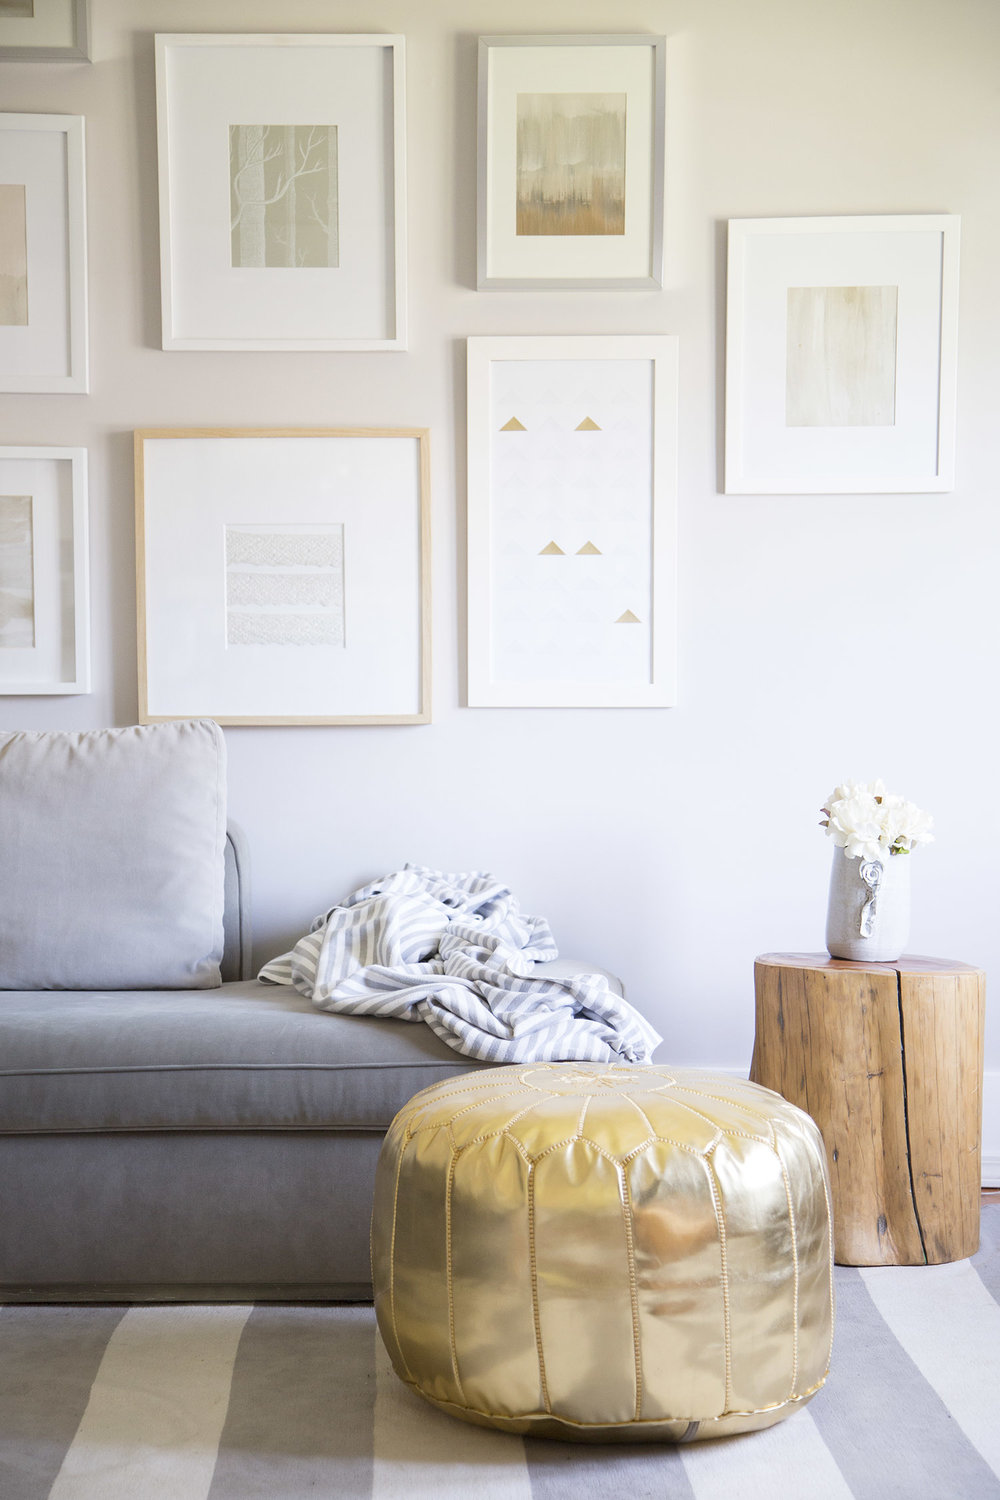 living room with gold pouf